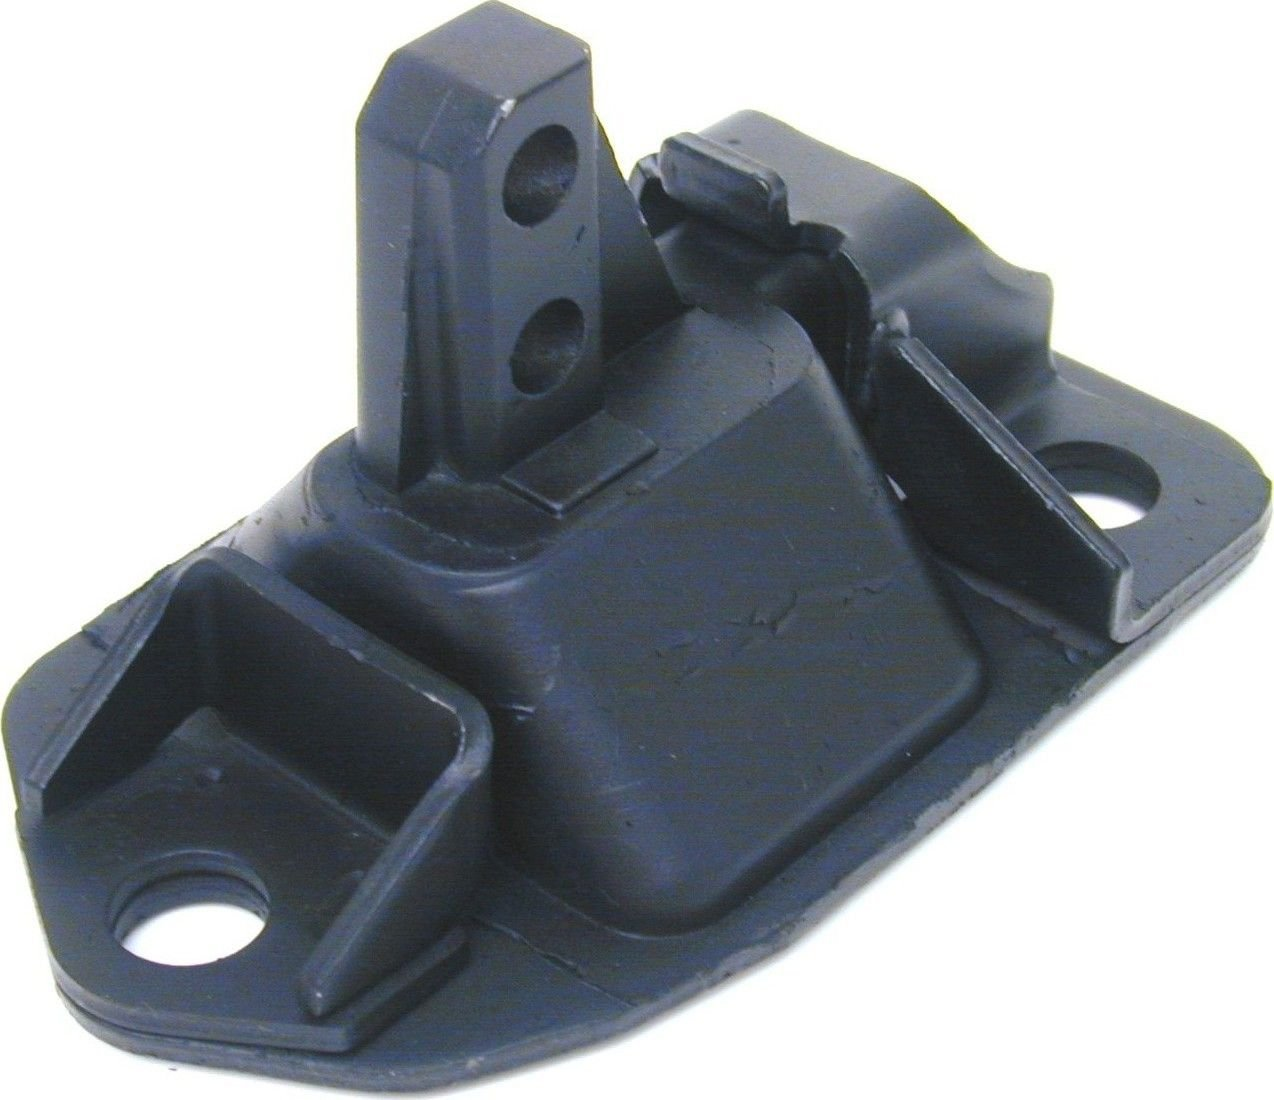 Volvo 850 Engine Mount Replacement Apa Uro Parts Anchor Beck 1994 Schematics 1996 Right 8631698 On Subframe